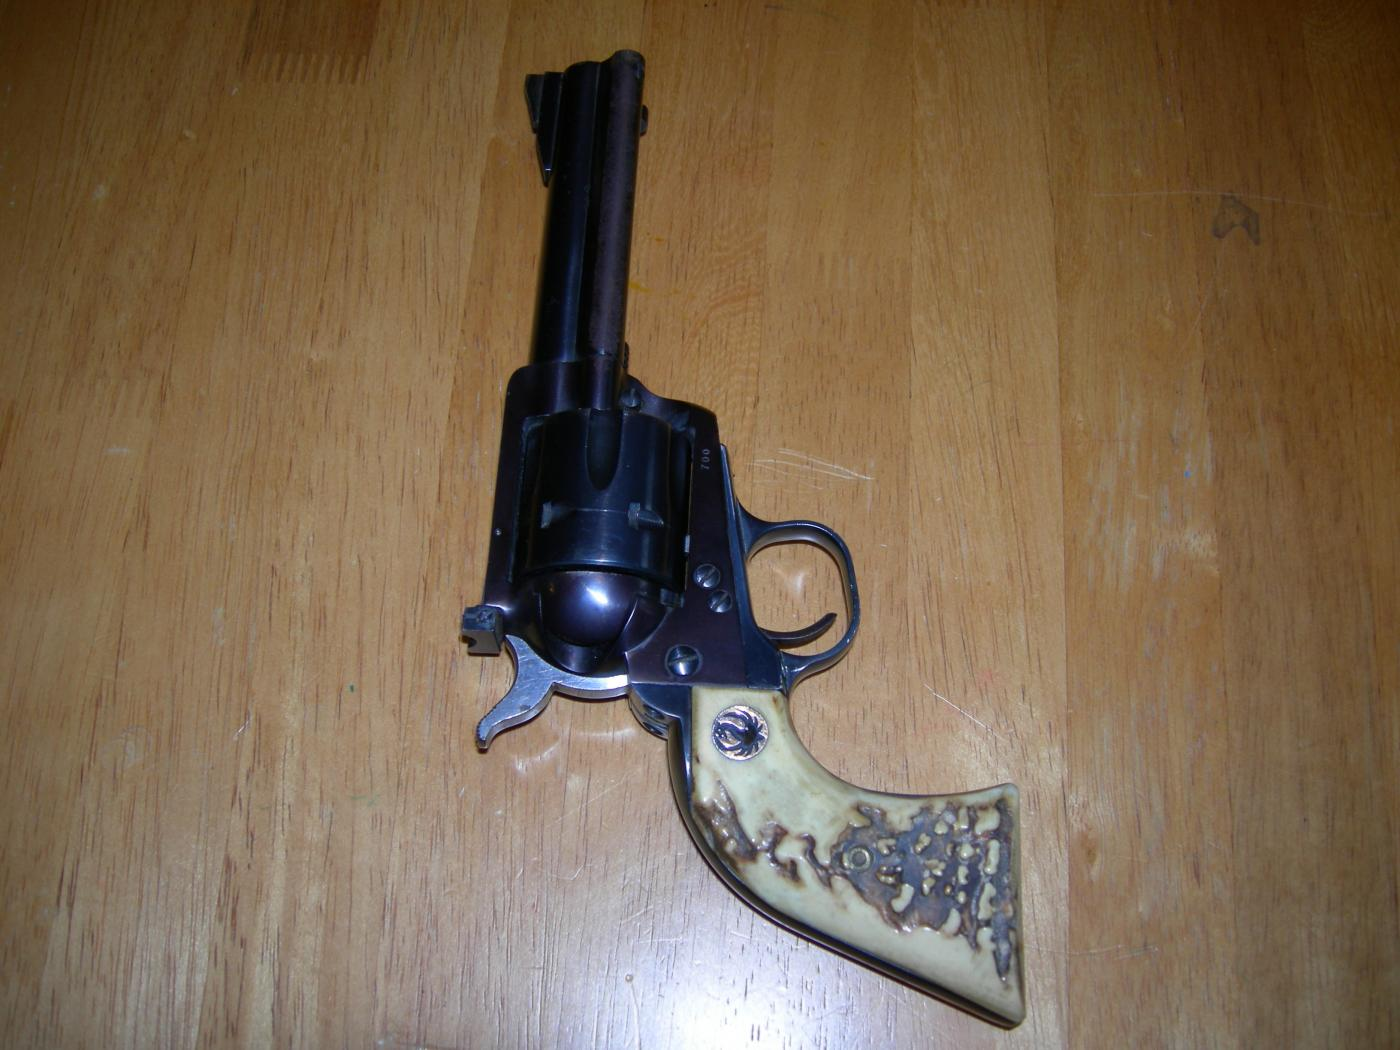 Ruger  357 Blackhawk and  22 Single Six Value? | The Firearms Forum